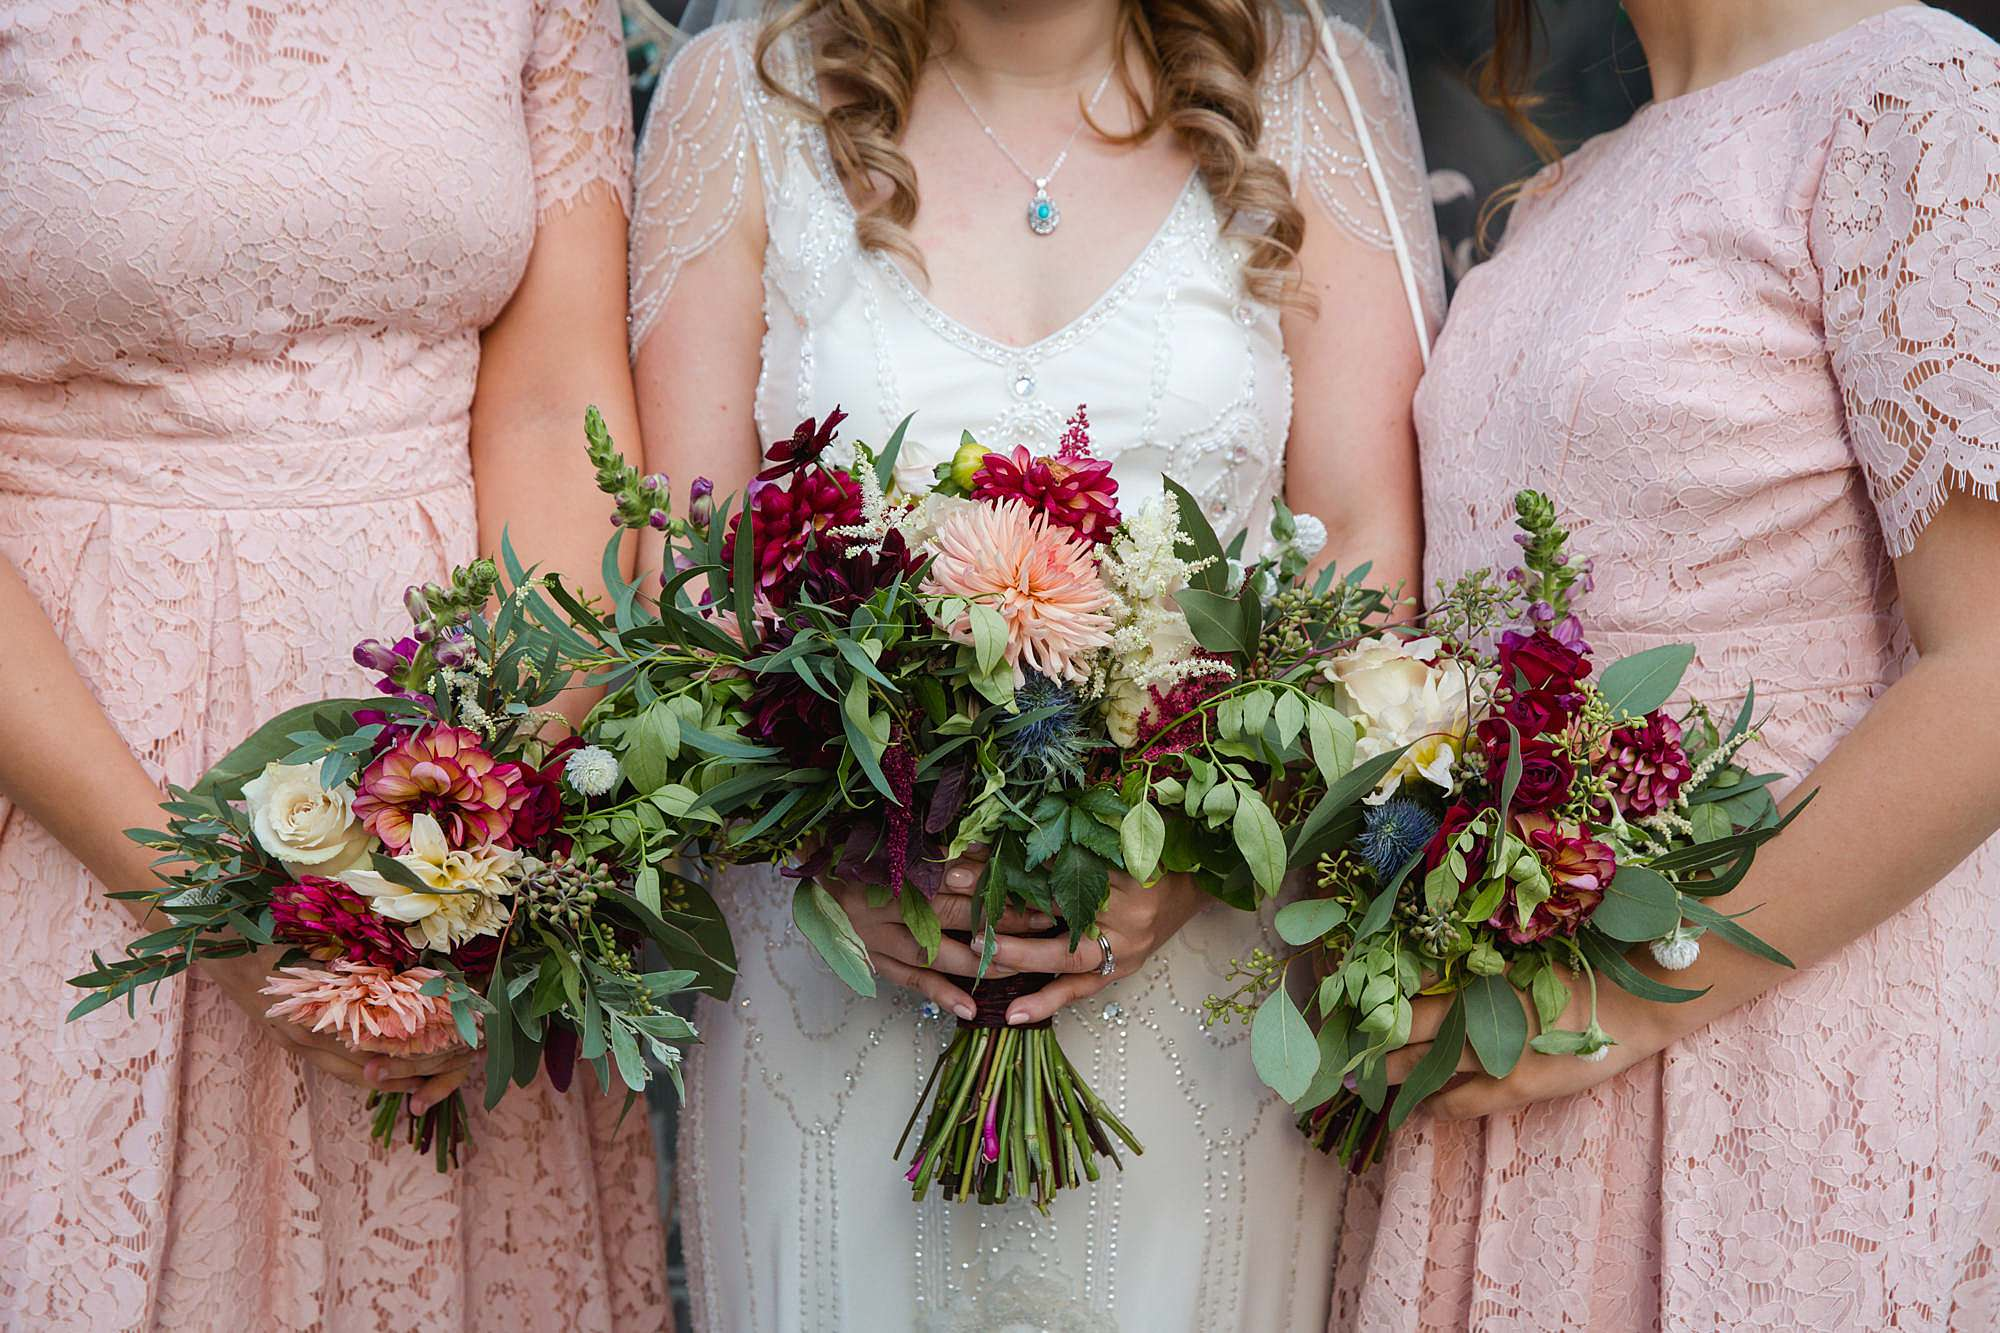 close up detail of wedding bouquets